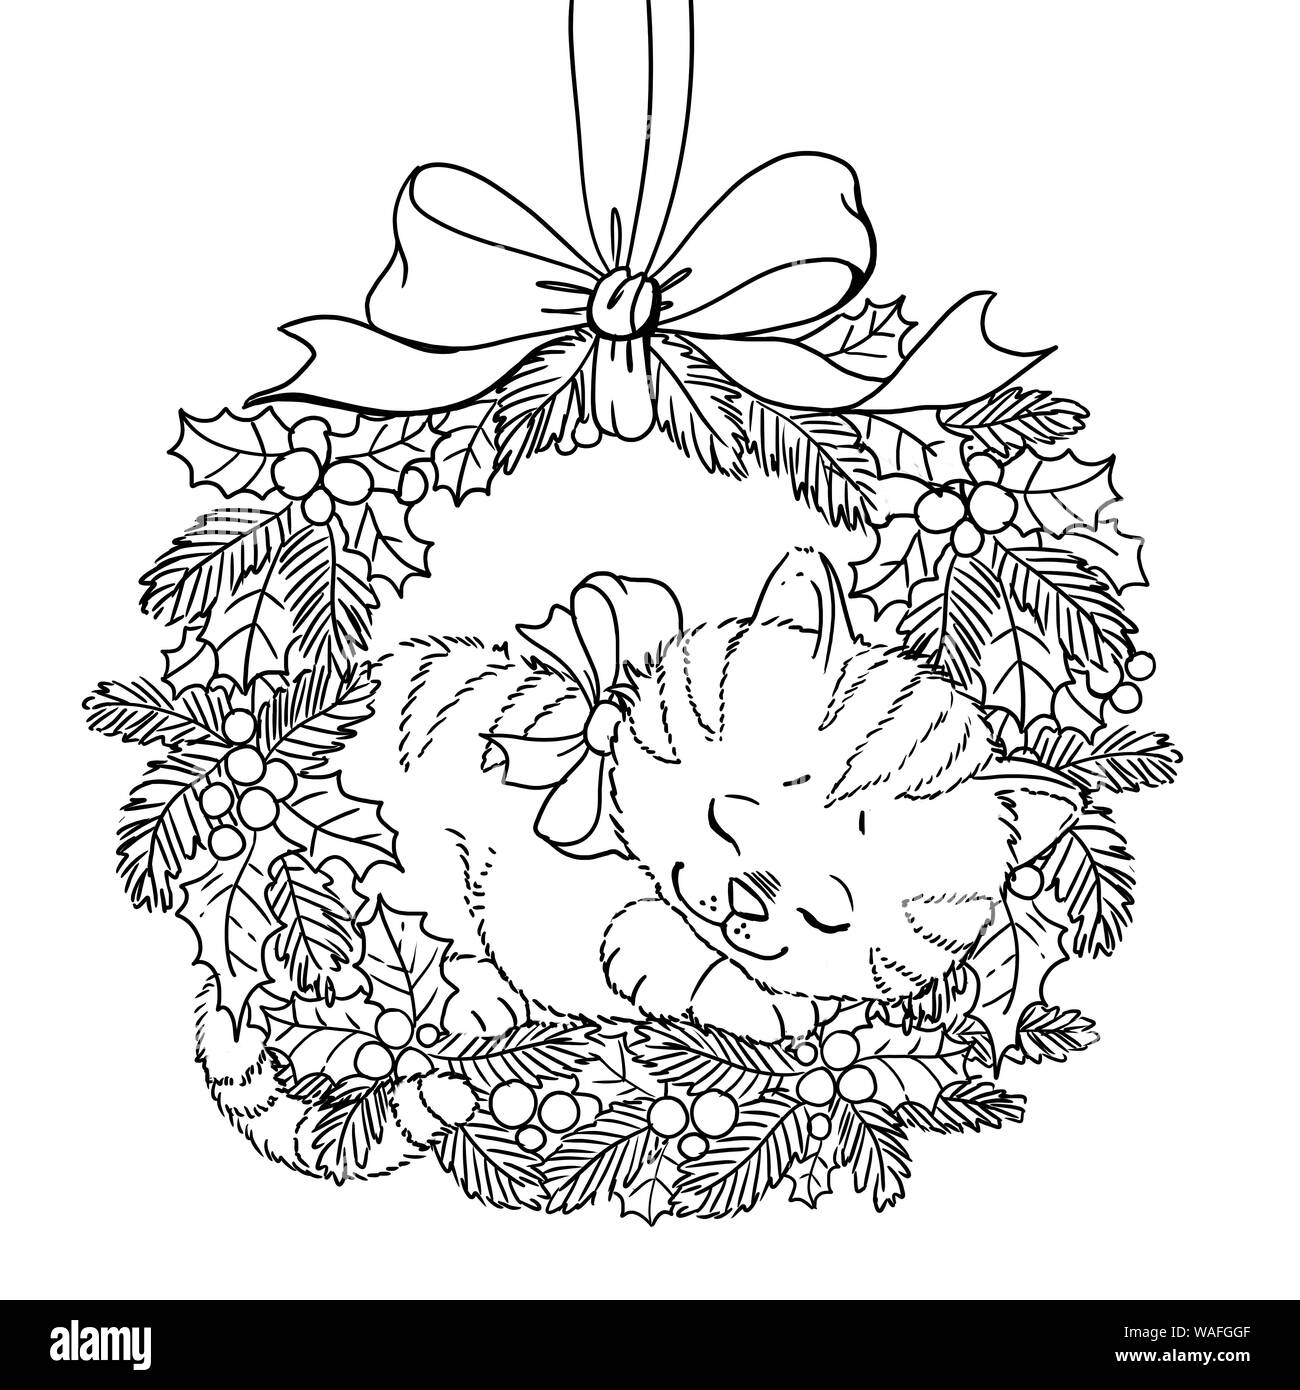 Christmas Wreath Coloring Page Doodle Pattern With Cute